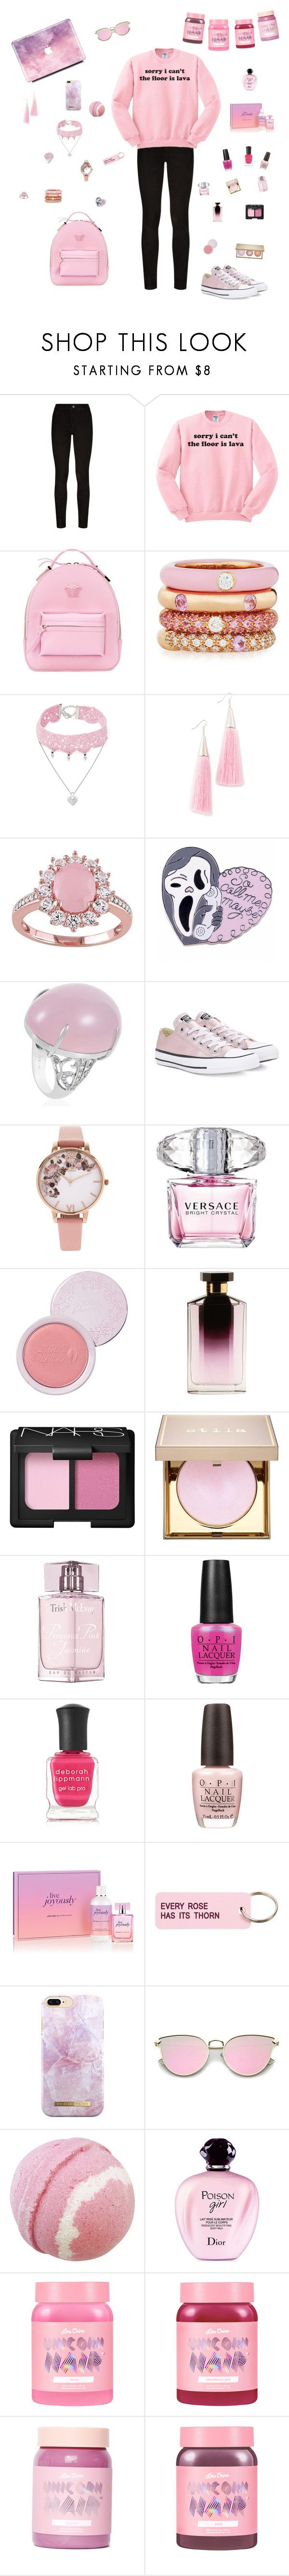 """Positively Pink"" by fxllenrose ❤ liked on Polyvore featuring Paige Denim, Versace, Adolfo Courrier, Design Lab, Eddie Borgo, Converse, Olivia Burton, 100% Pure, STELLA McCARTNEY and NARS Cosmetics"